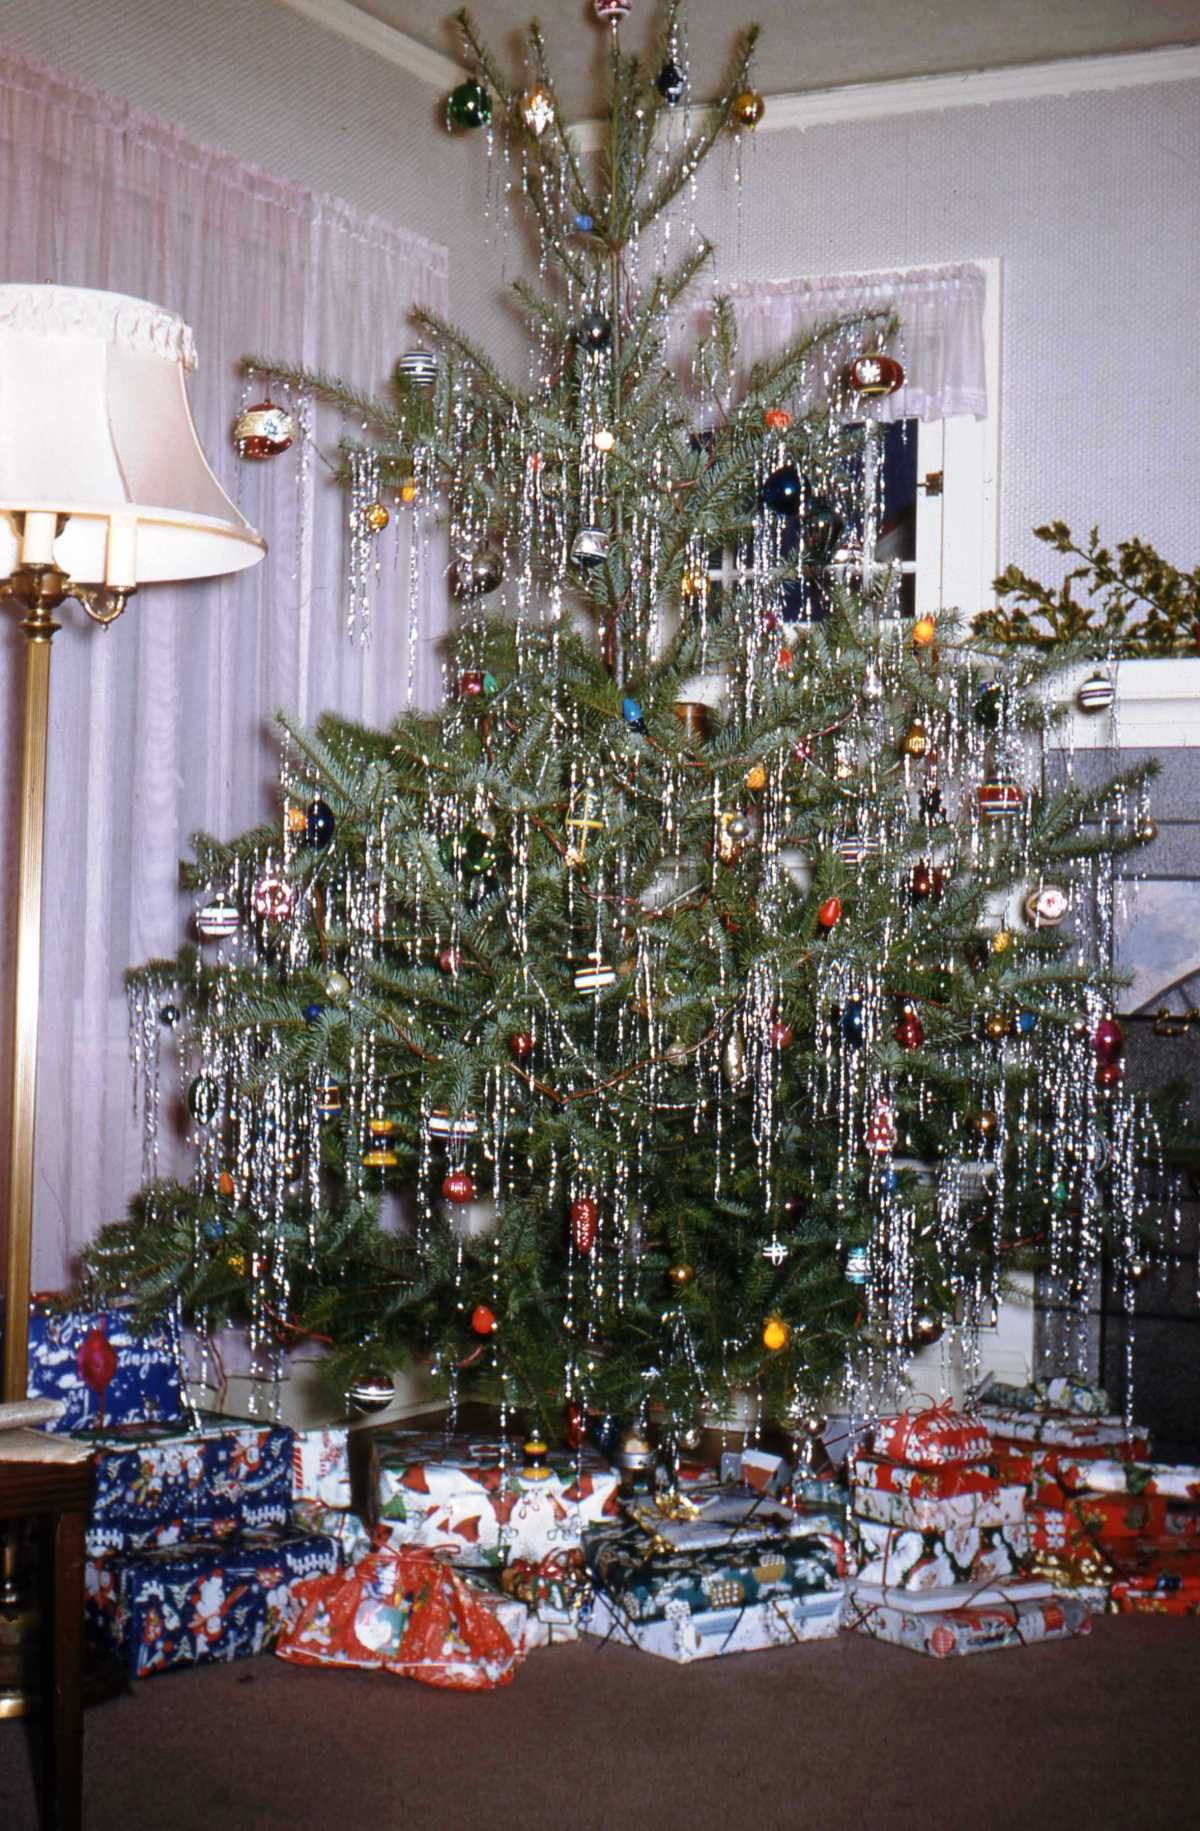 a vintage 1950s christmas tree i love trees dripping with silver tinsellooks like icicles - Vintage Christmas Decorations 1950s